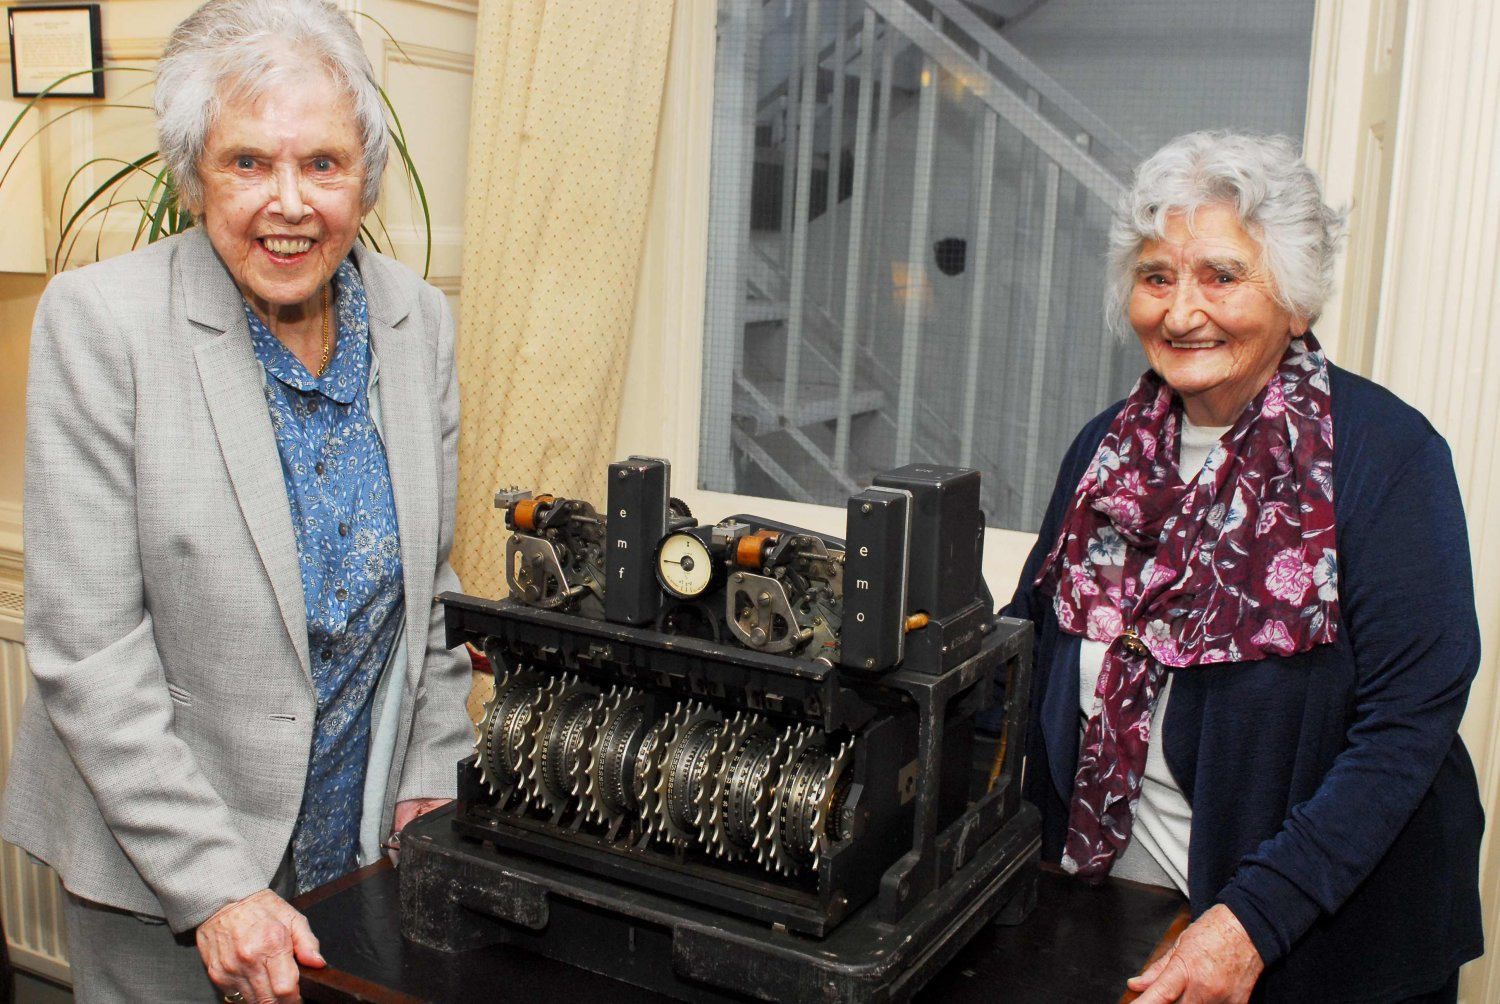 Colossus vets Betty O'Connell and Irene Dixon